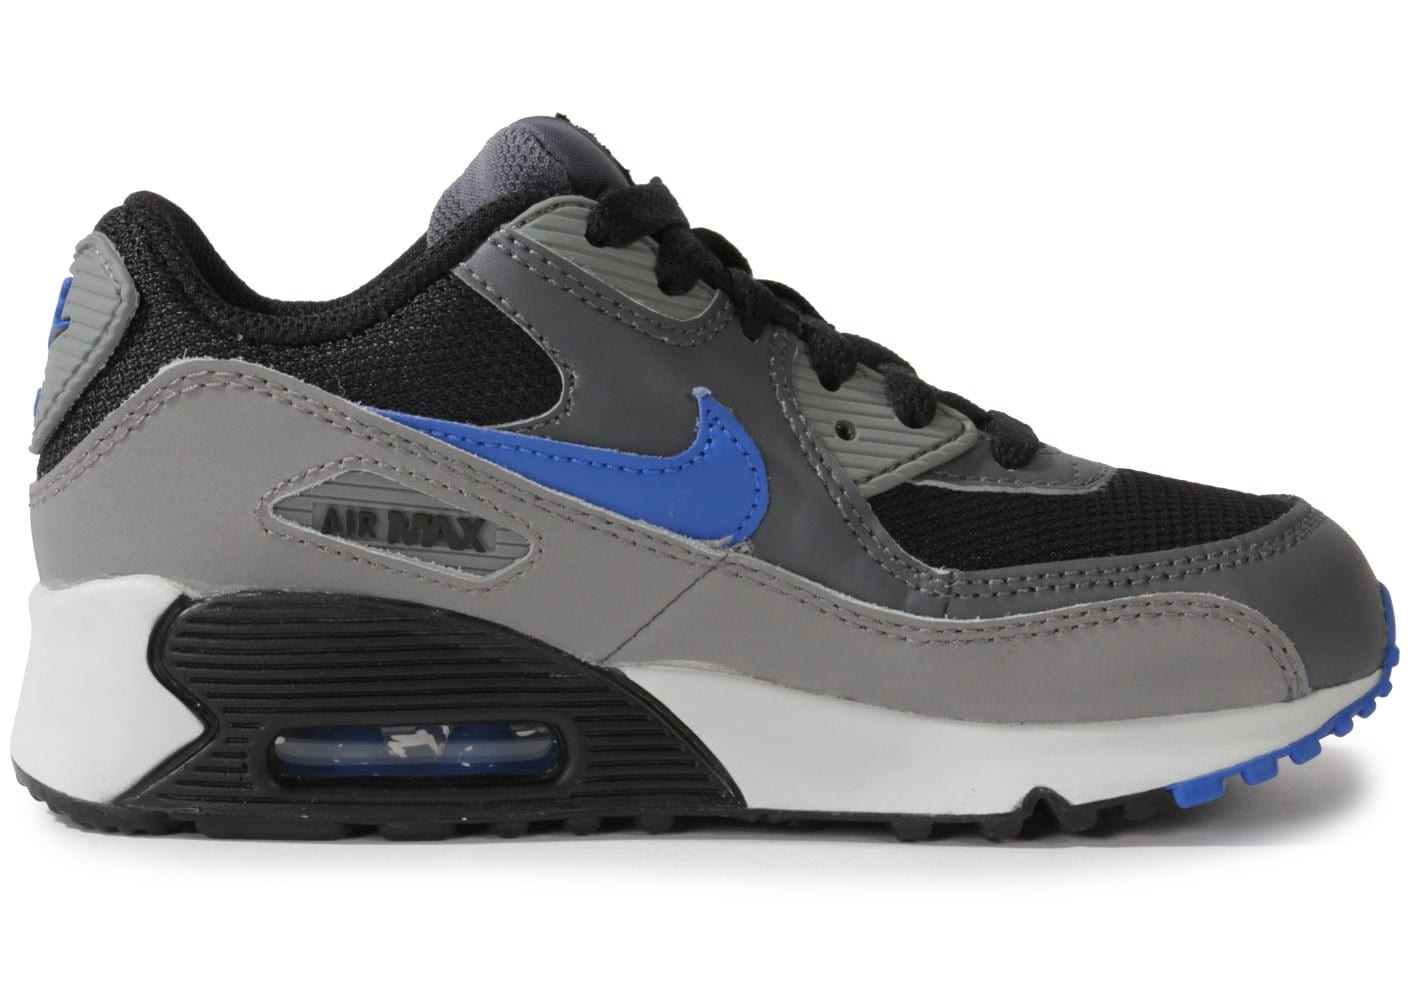 nike air max 90 enfant grise chaussures chaussures chausport. Black Bedroom Furniture Sets. Home Design Ideas